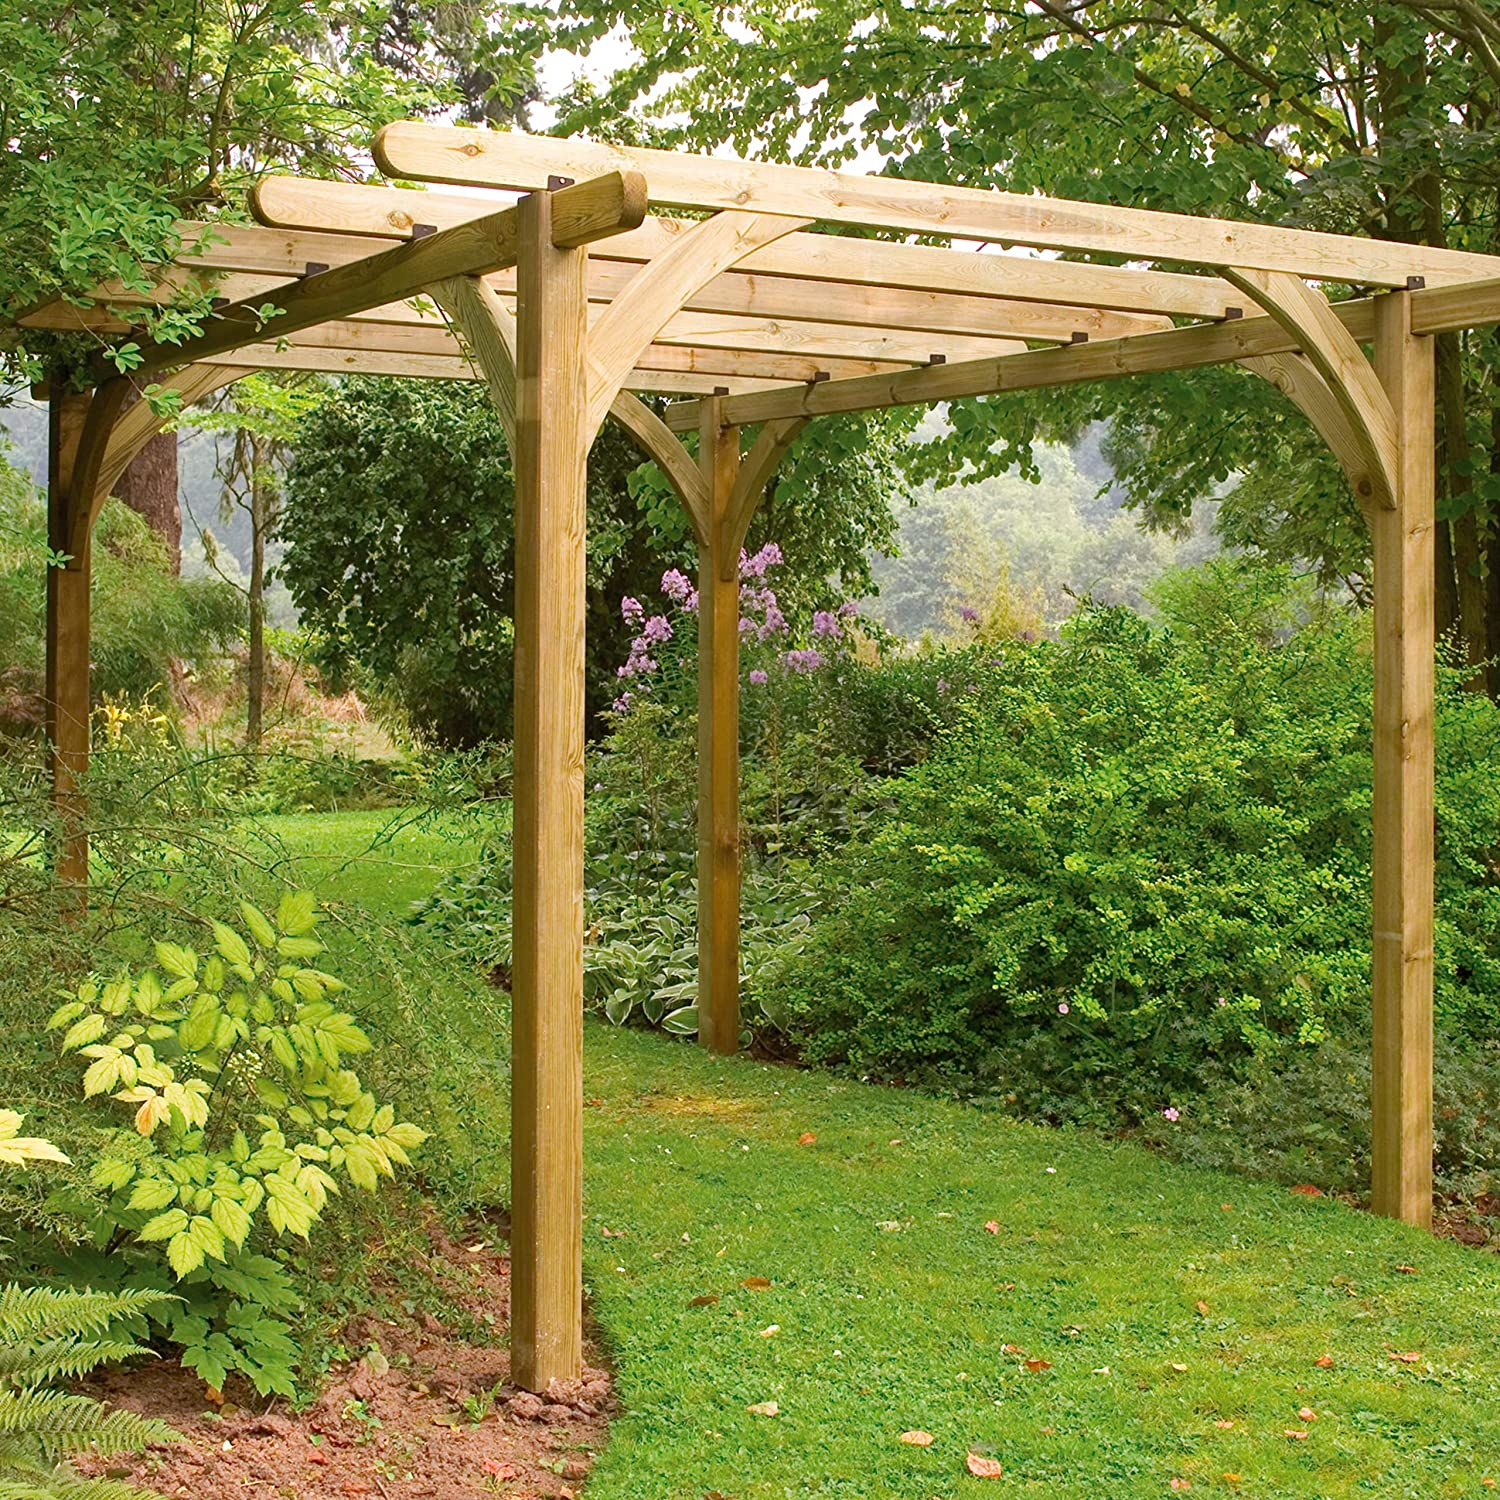 Konstsmide Bosque upk01hd 2, 7 x 2, 7 m Ultima Kit Pergola, Color Gris: Amazon.es: Jardín